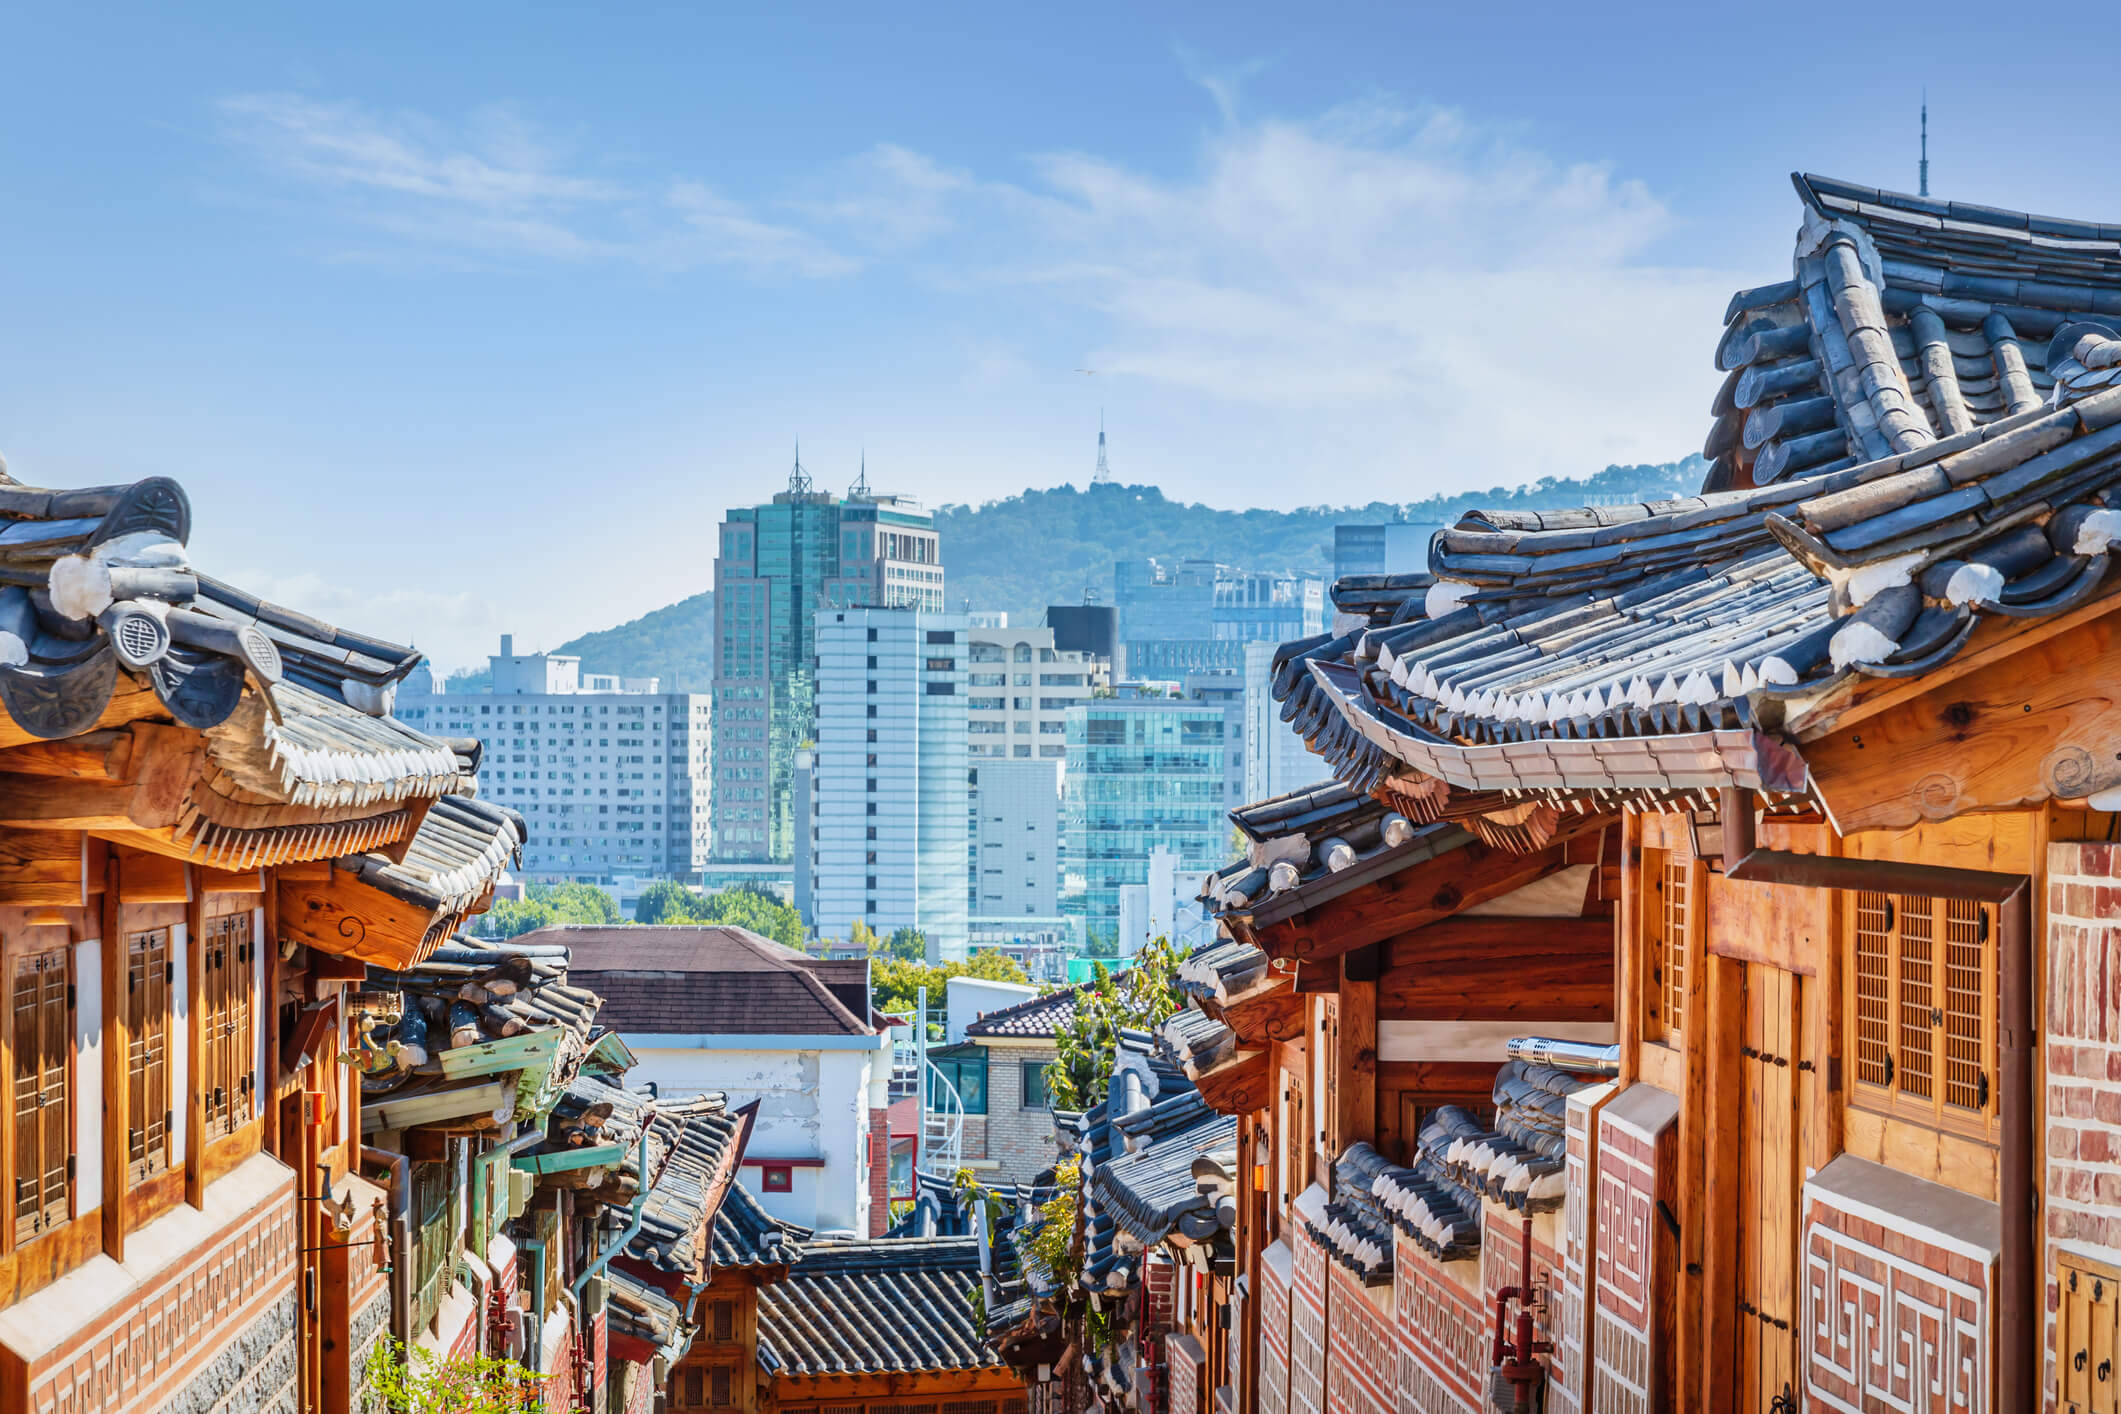 SK Telecom: Lessons in 5G, AI, and adjacent market growth